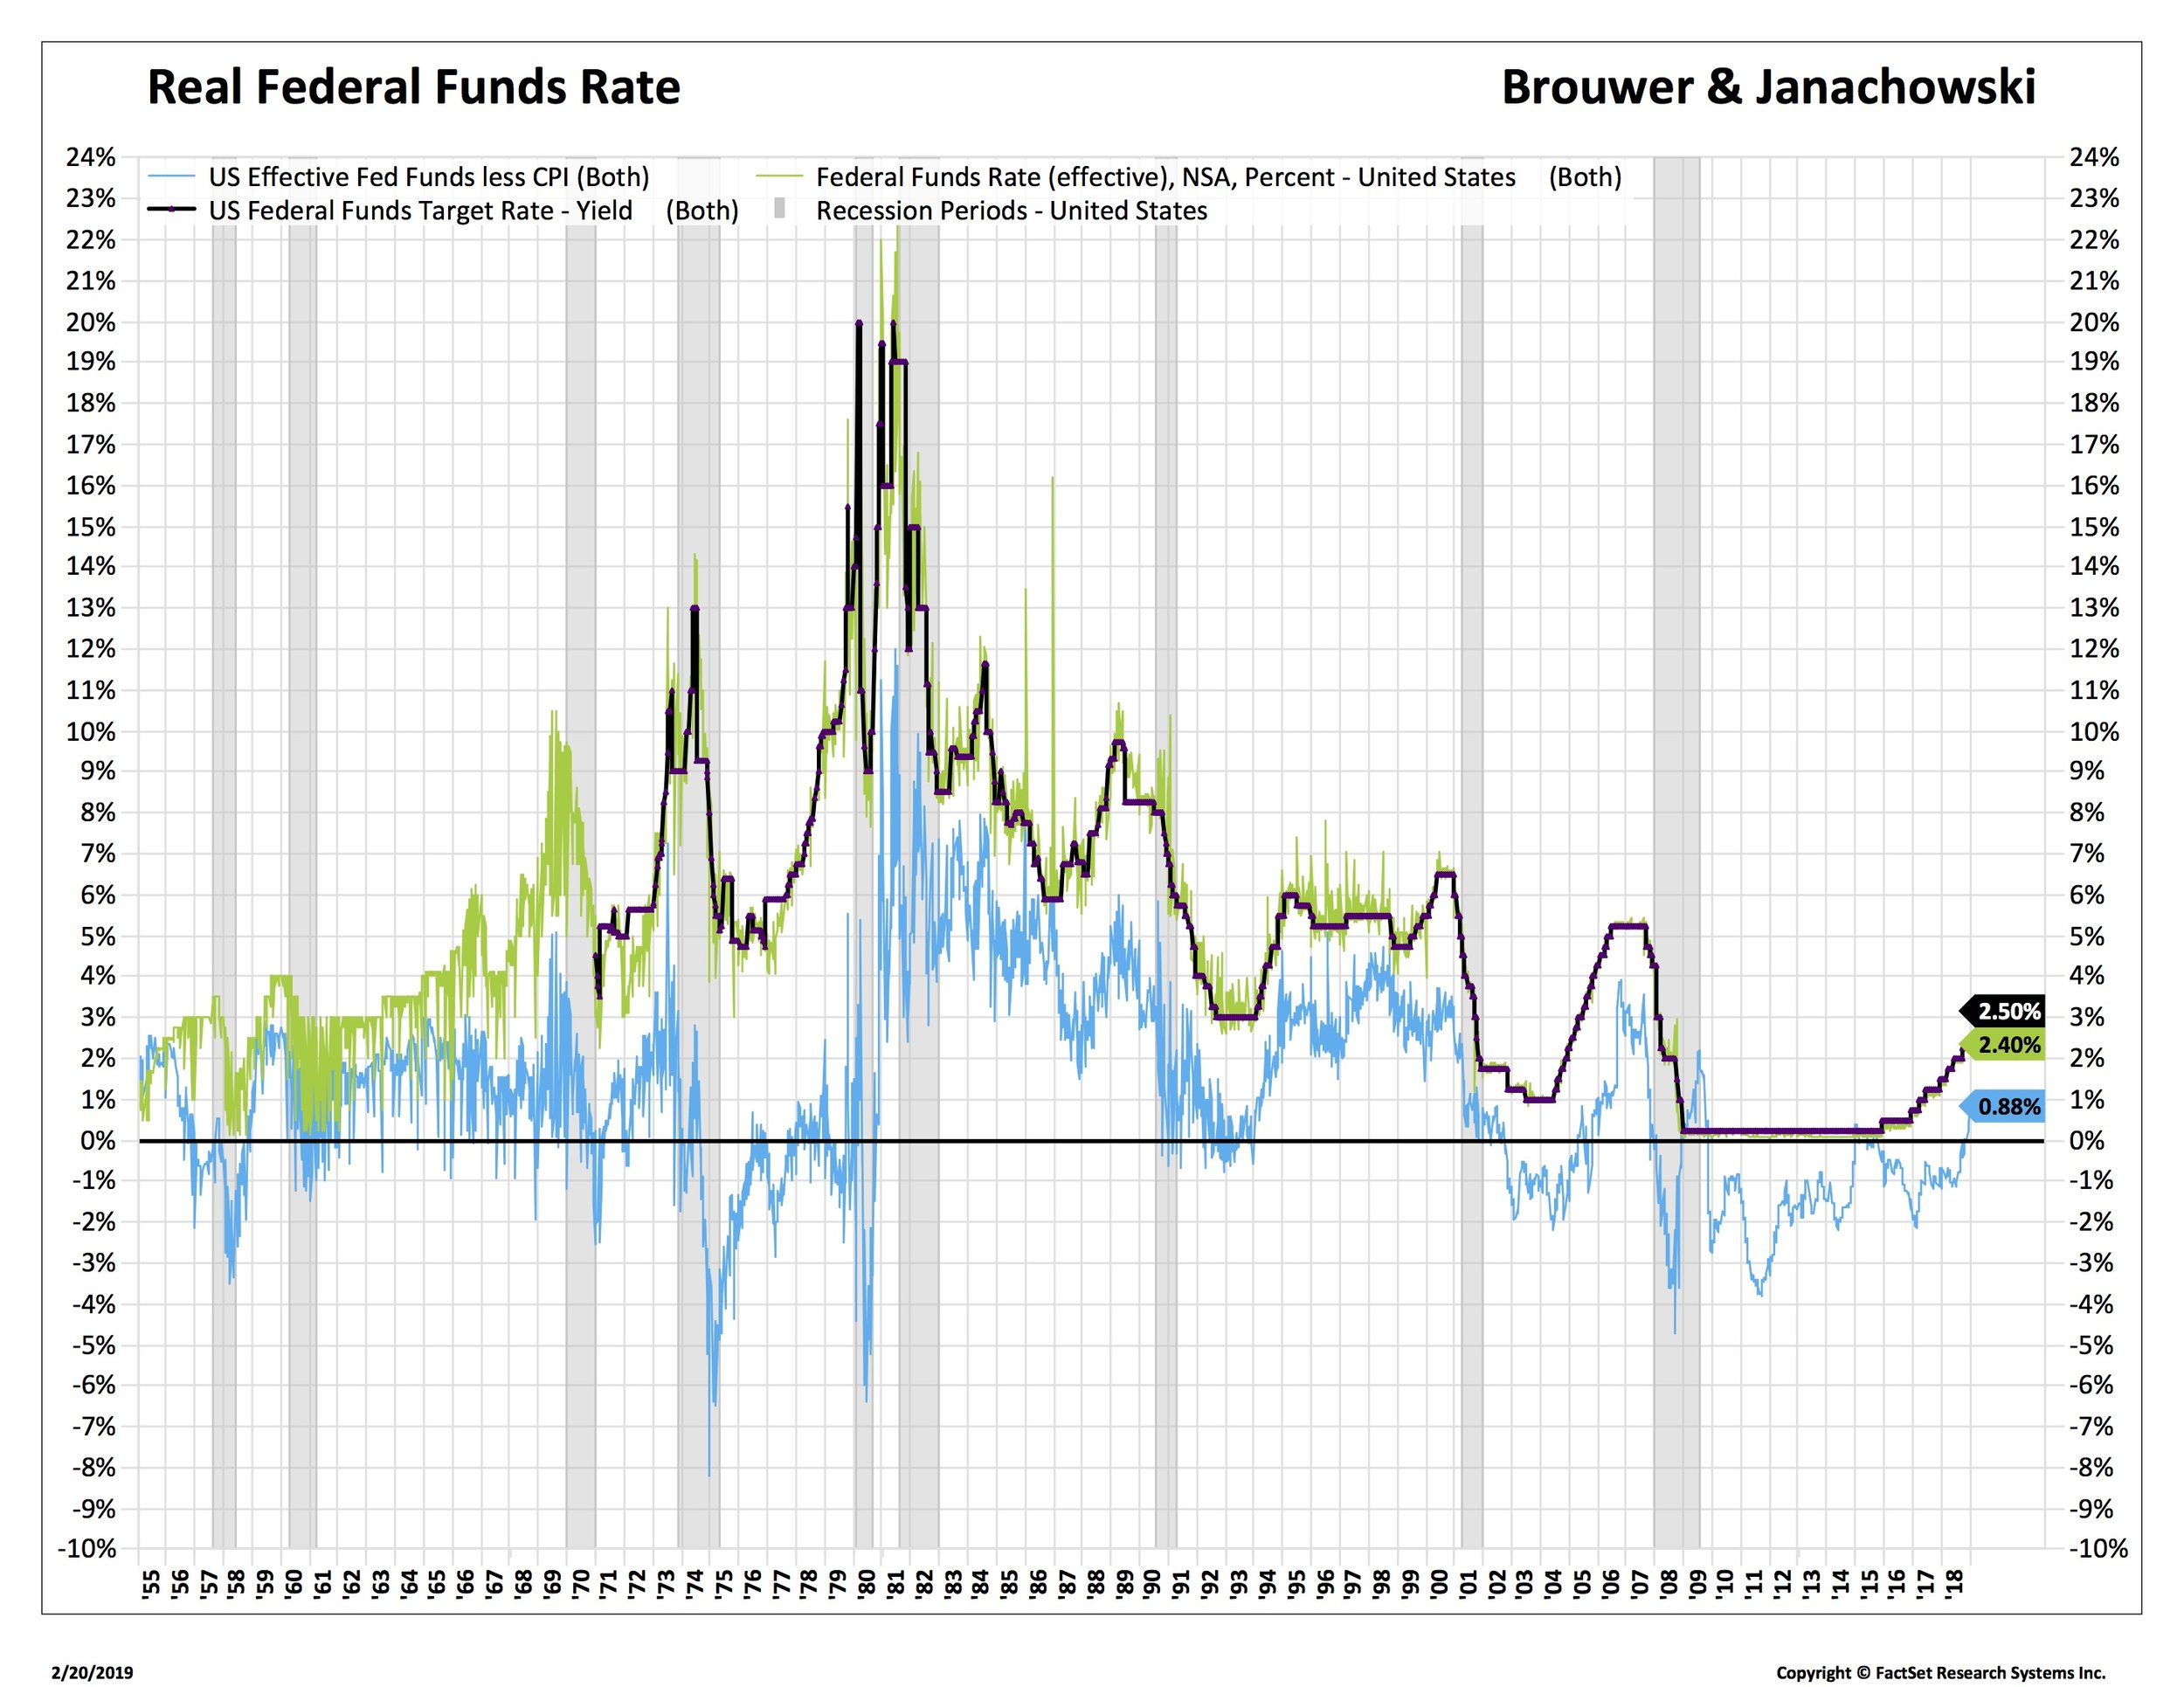 2. FEd Funds and real FF_REFFFUNDEFF-FDS.jpg